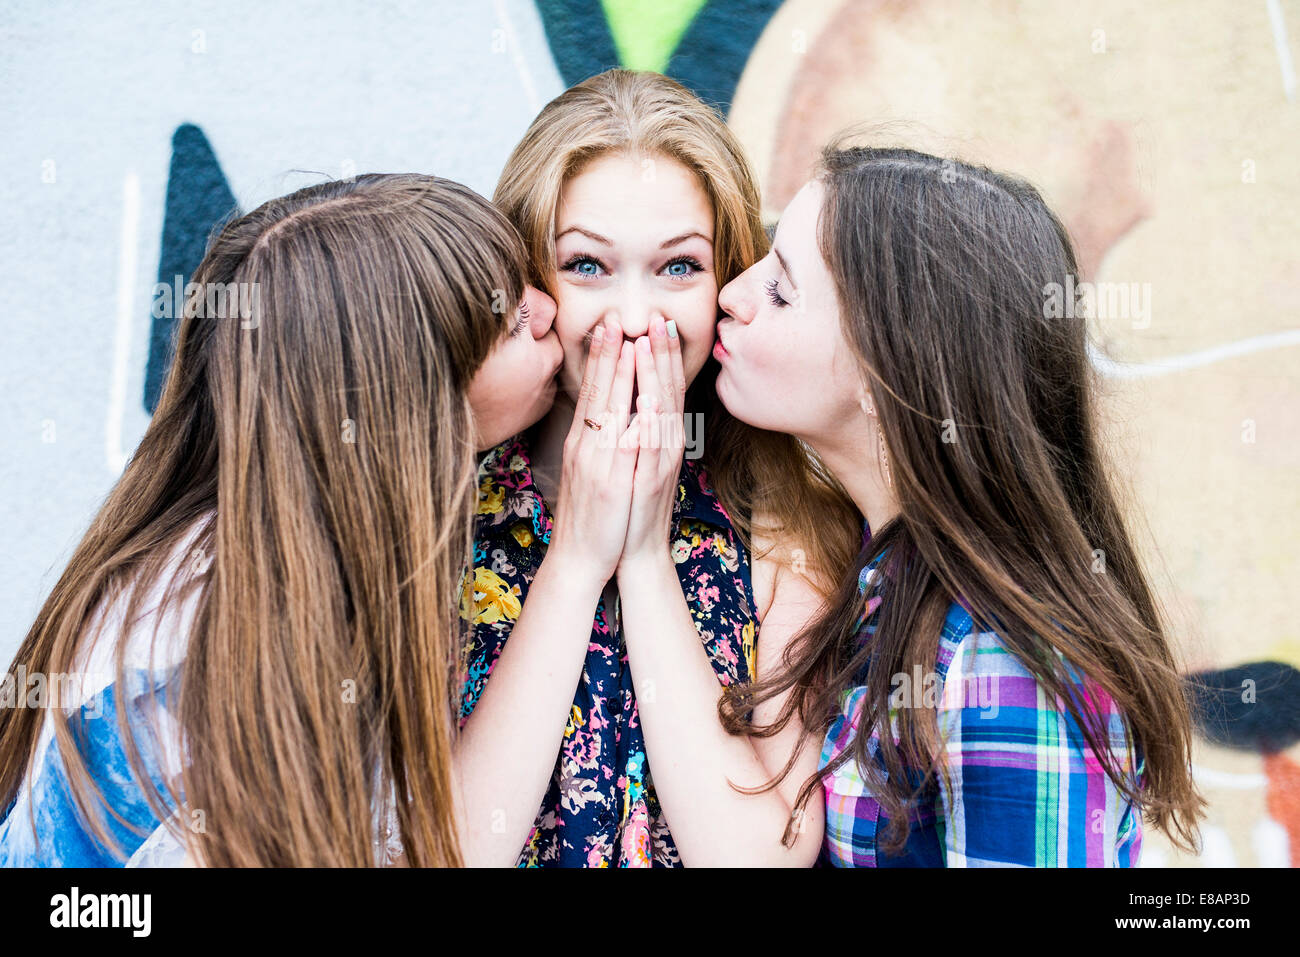 Woman delighted by friends kissing her on cheek - Stock Image